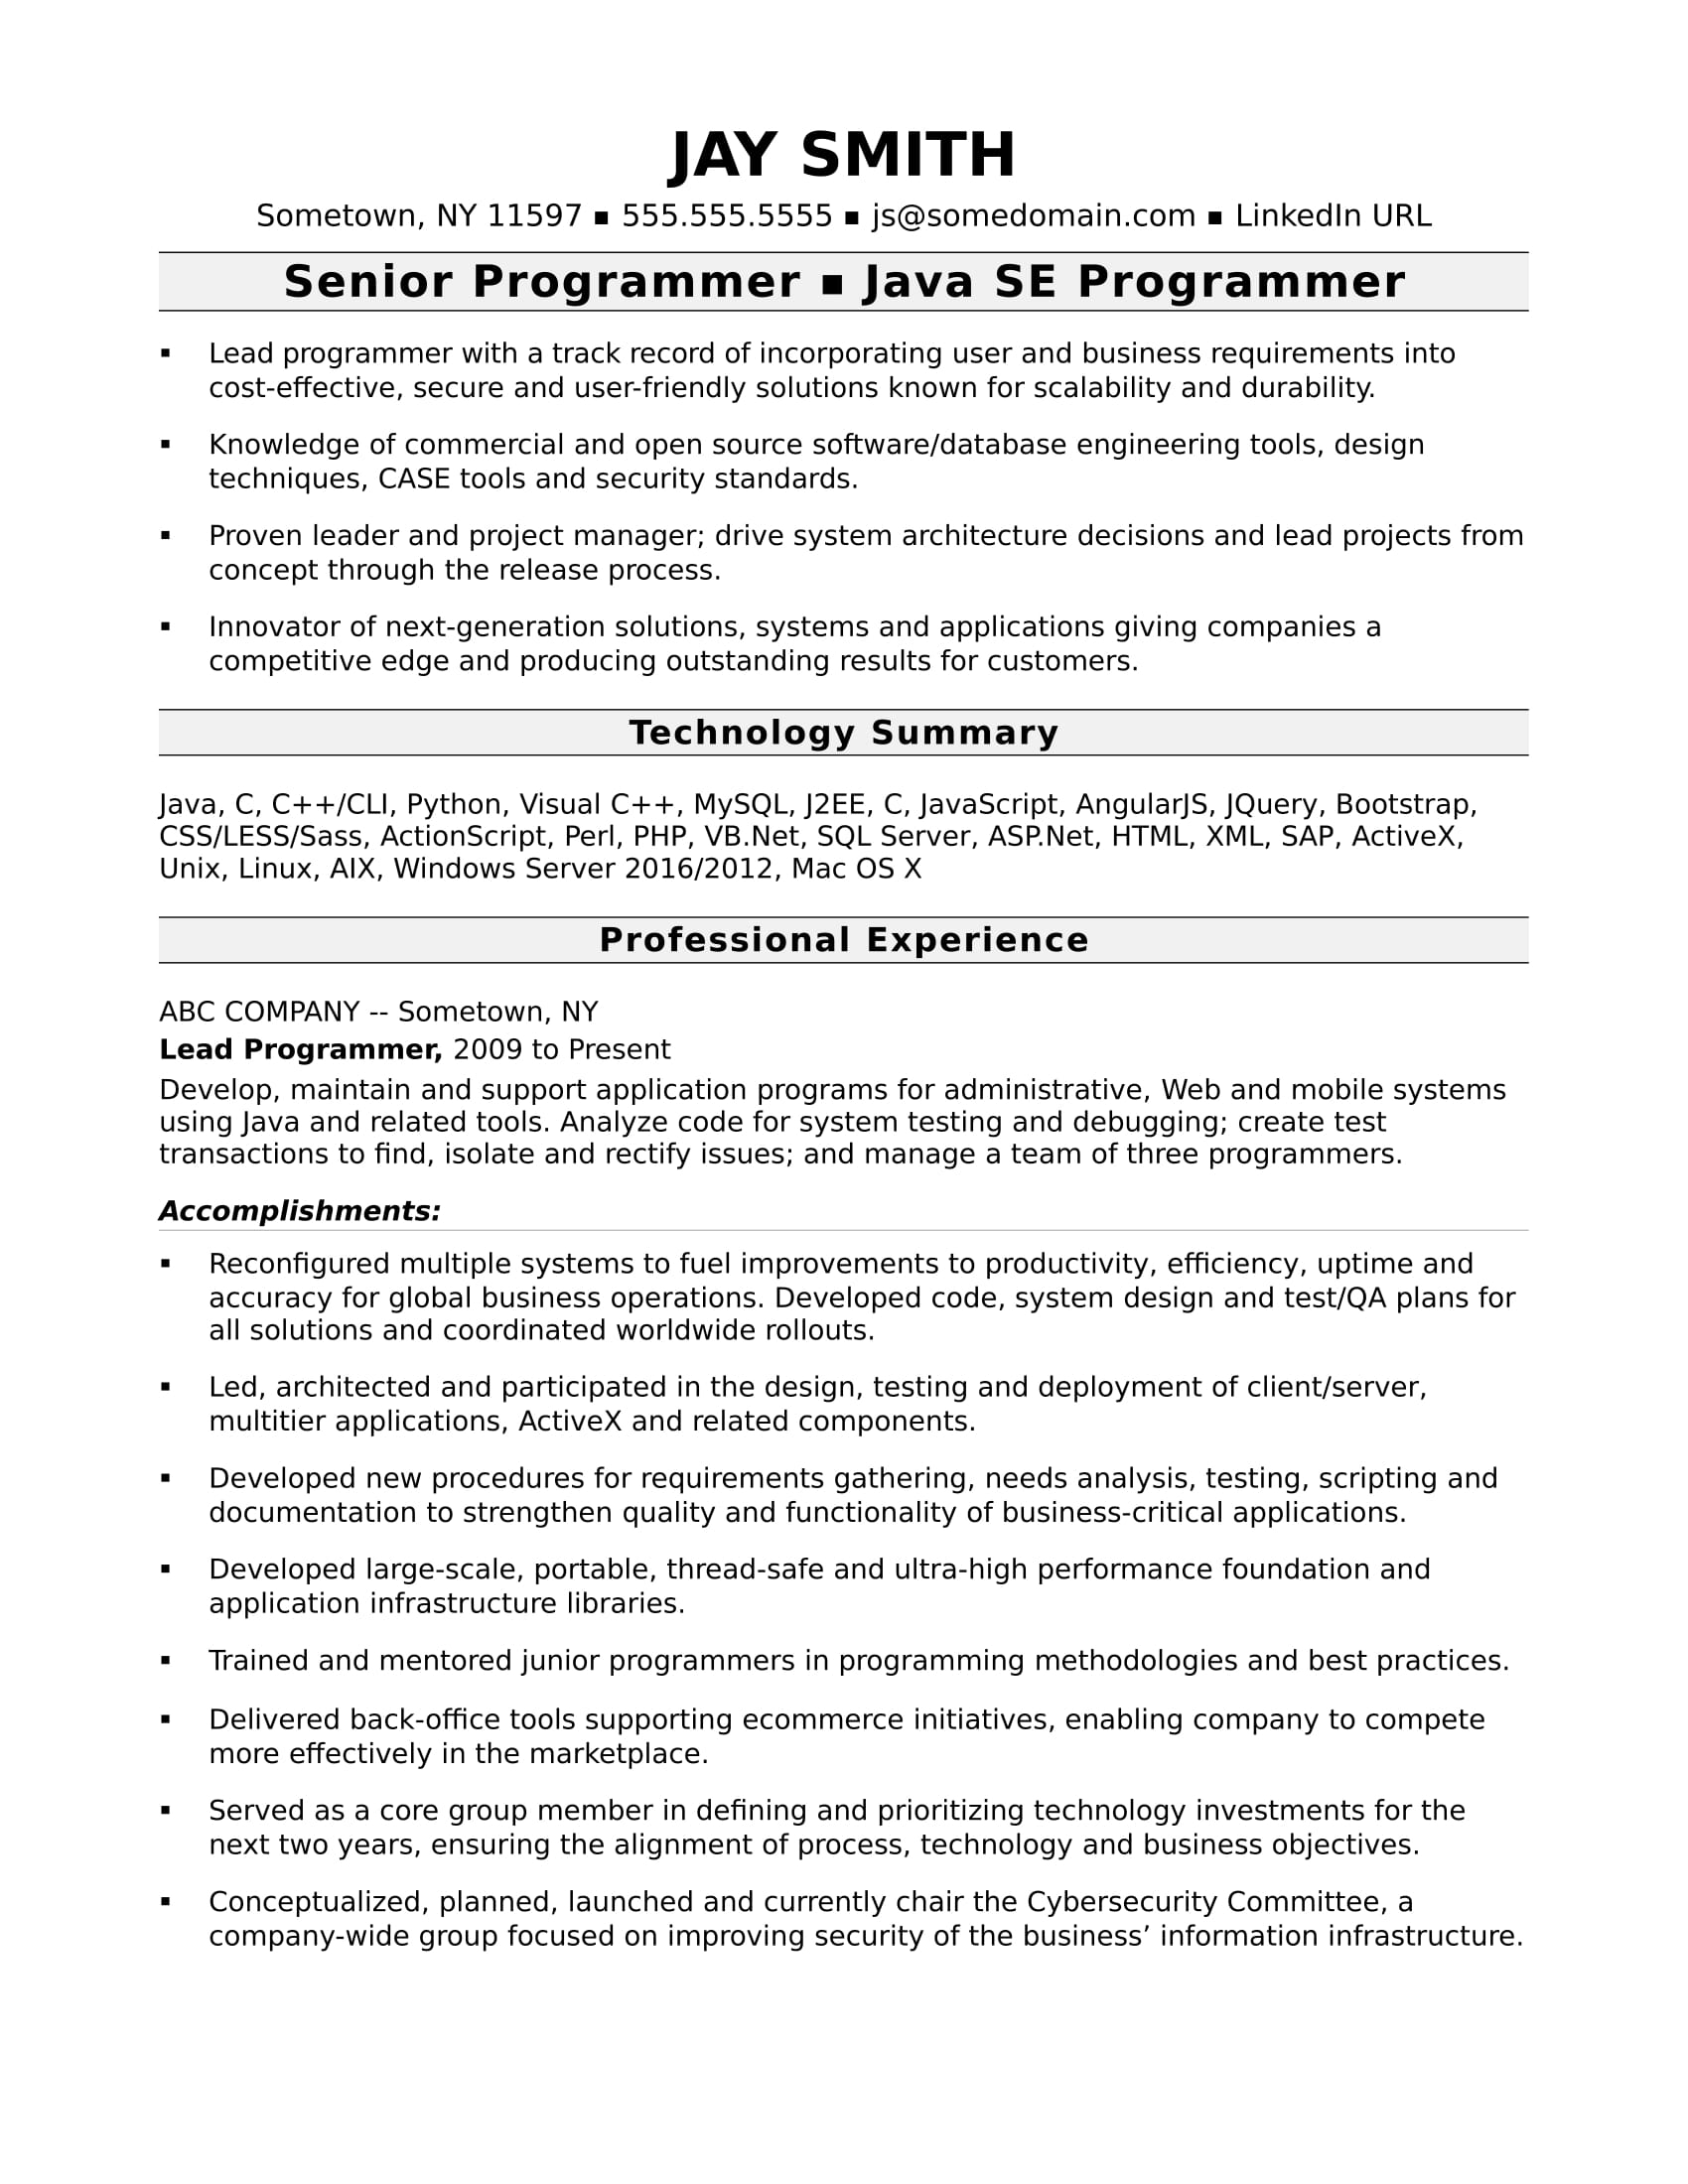 sample resume for an experienced computer programmer - Monster Sample Resume